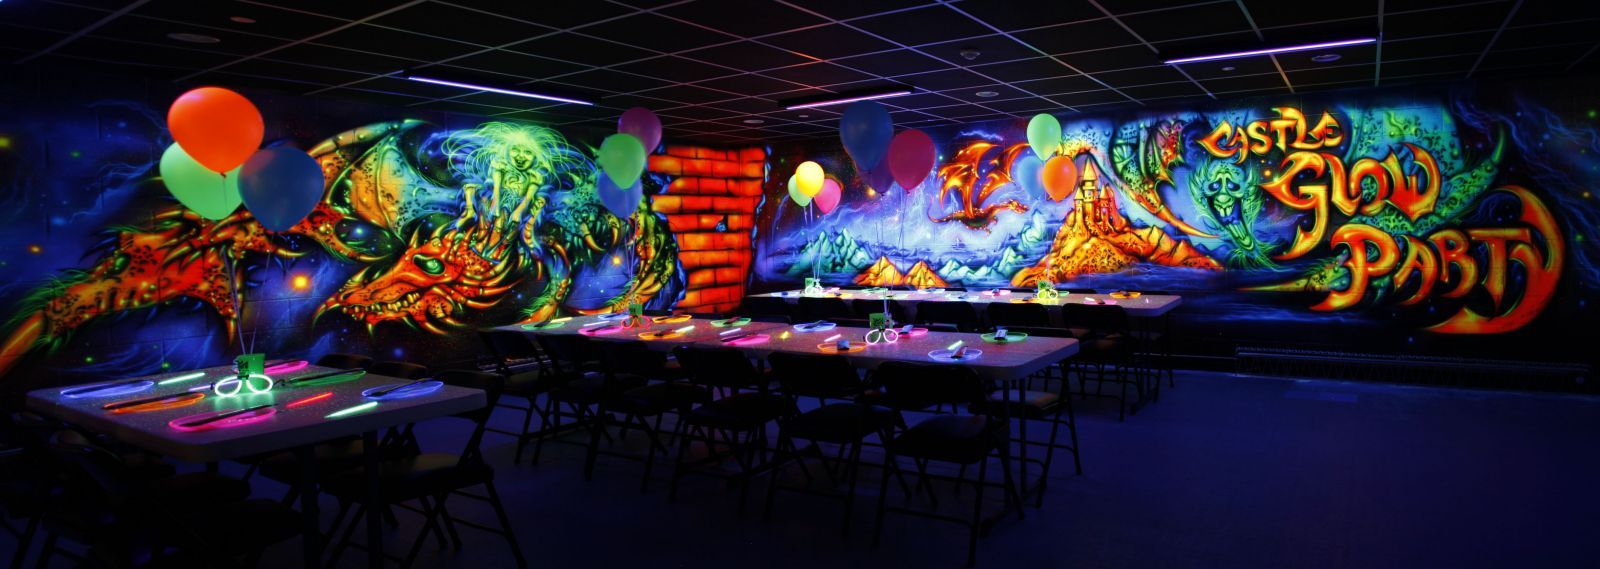 Glow Party Room At The Castle Fun Center In Chester NY Hudson Valley Orange County New York Amusement Park Thecastlefuncenter